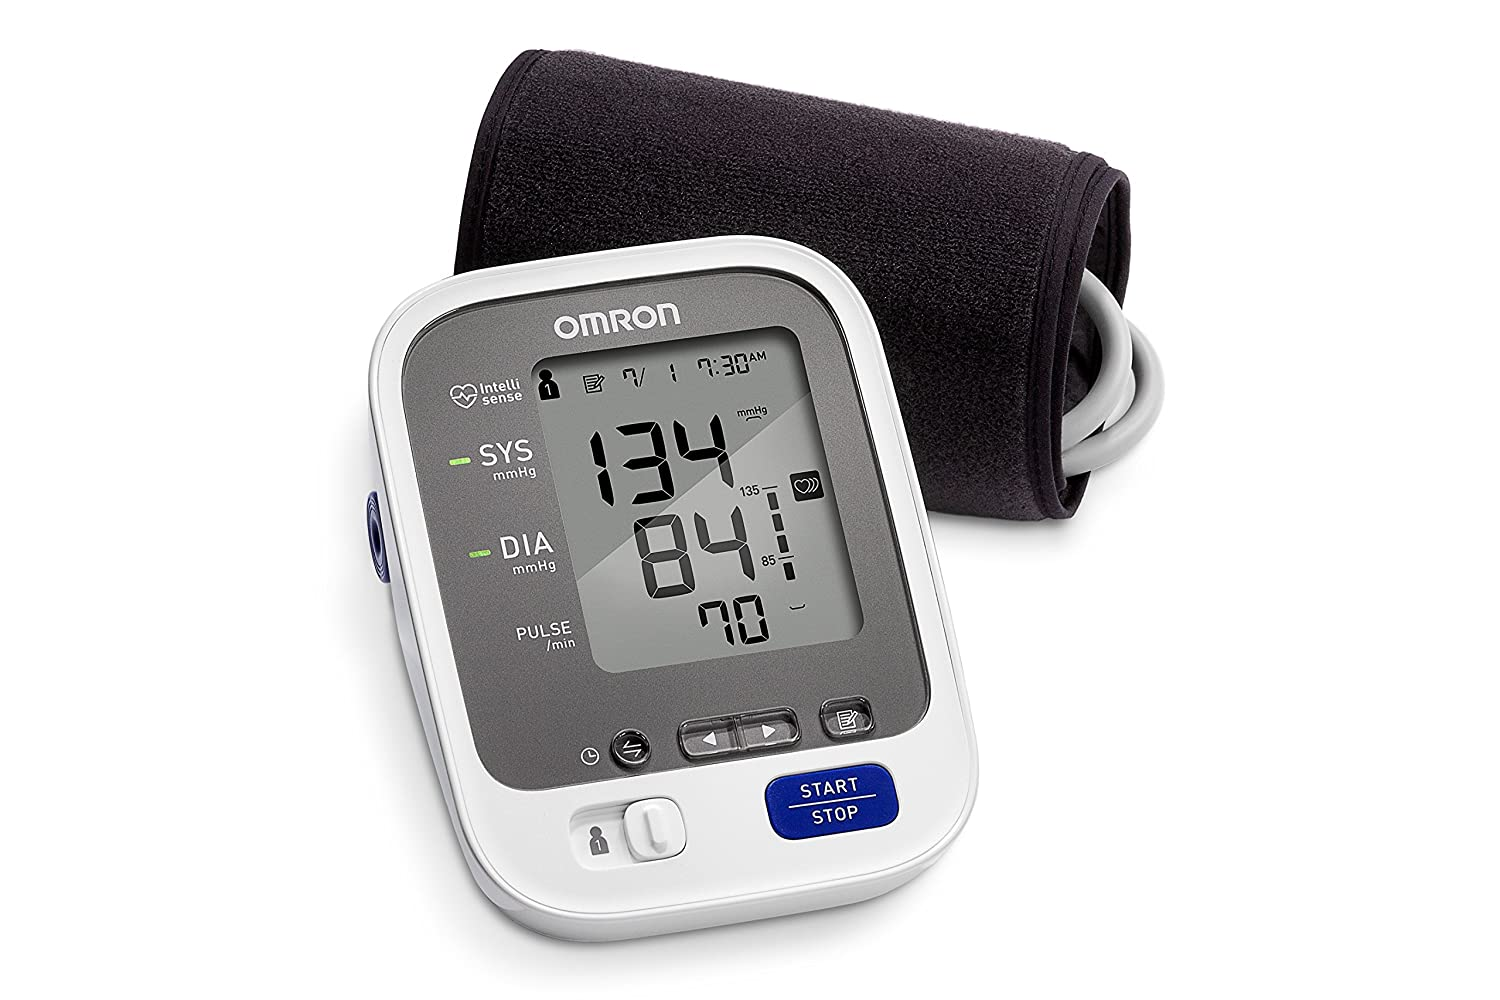 Omron 7 Series Wireless Upper Arm Blood Pressure Monitor 2-User, 120-Reading Memory, BP Indicator LEDs, Bluetooth Works with Amazon Alexa by Omron